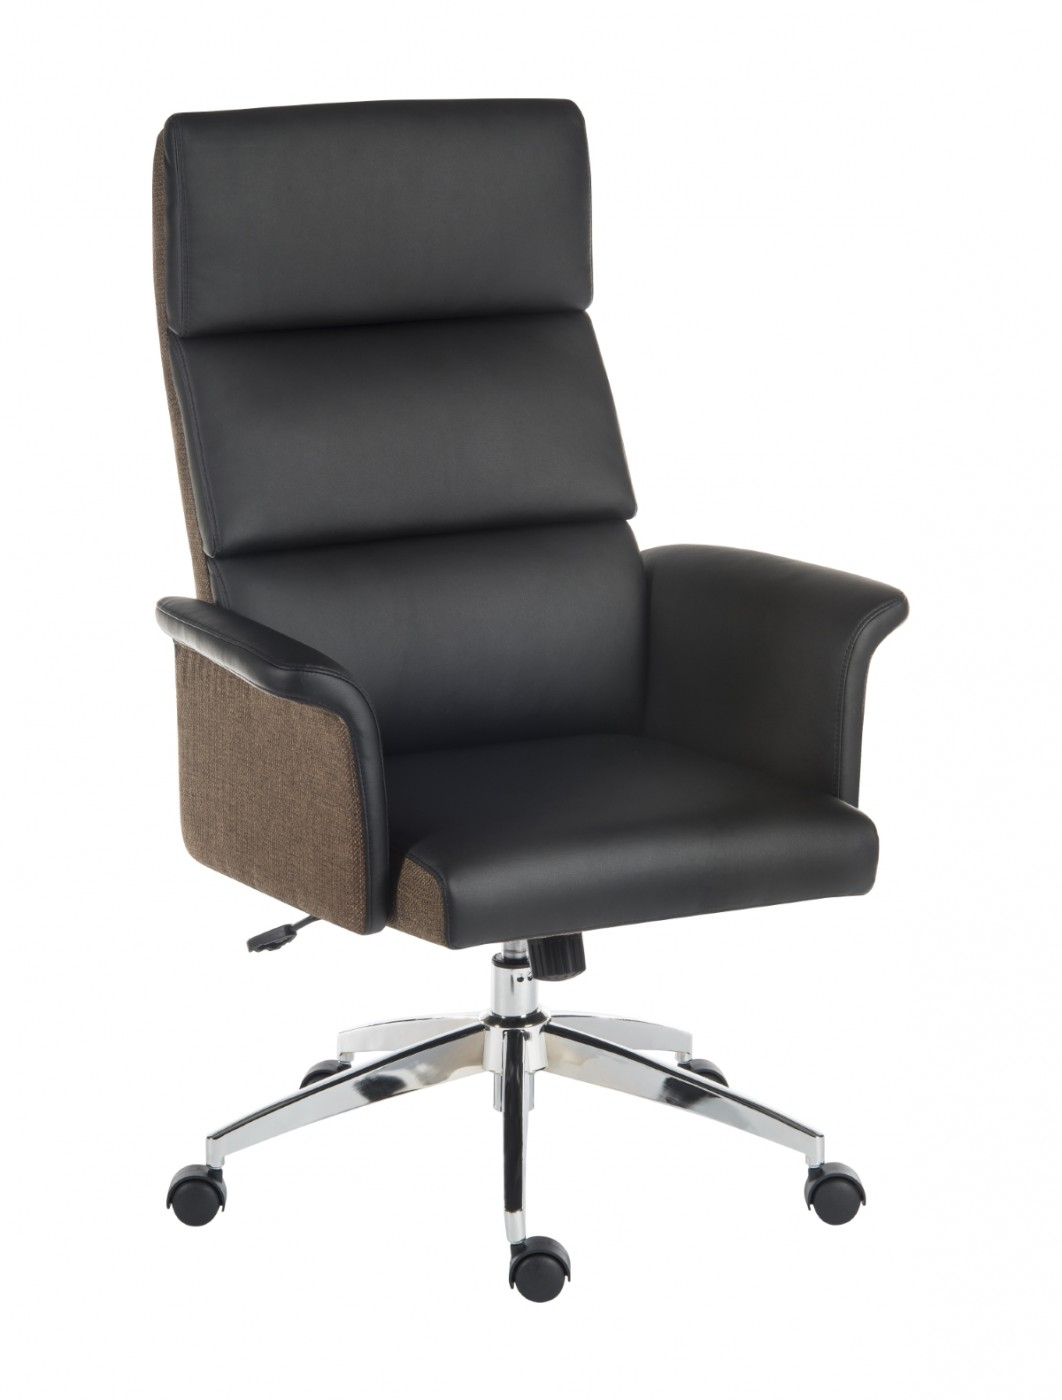 Office Chairs - Teknik Elegance High Office Chair 6950BLK - enlarged view  sc 1 st  121 Office Furniture & Office Chairs - Teknik Elegance High Back Executive Office Chair ...